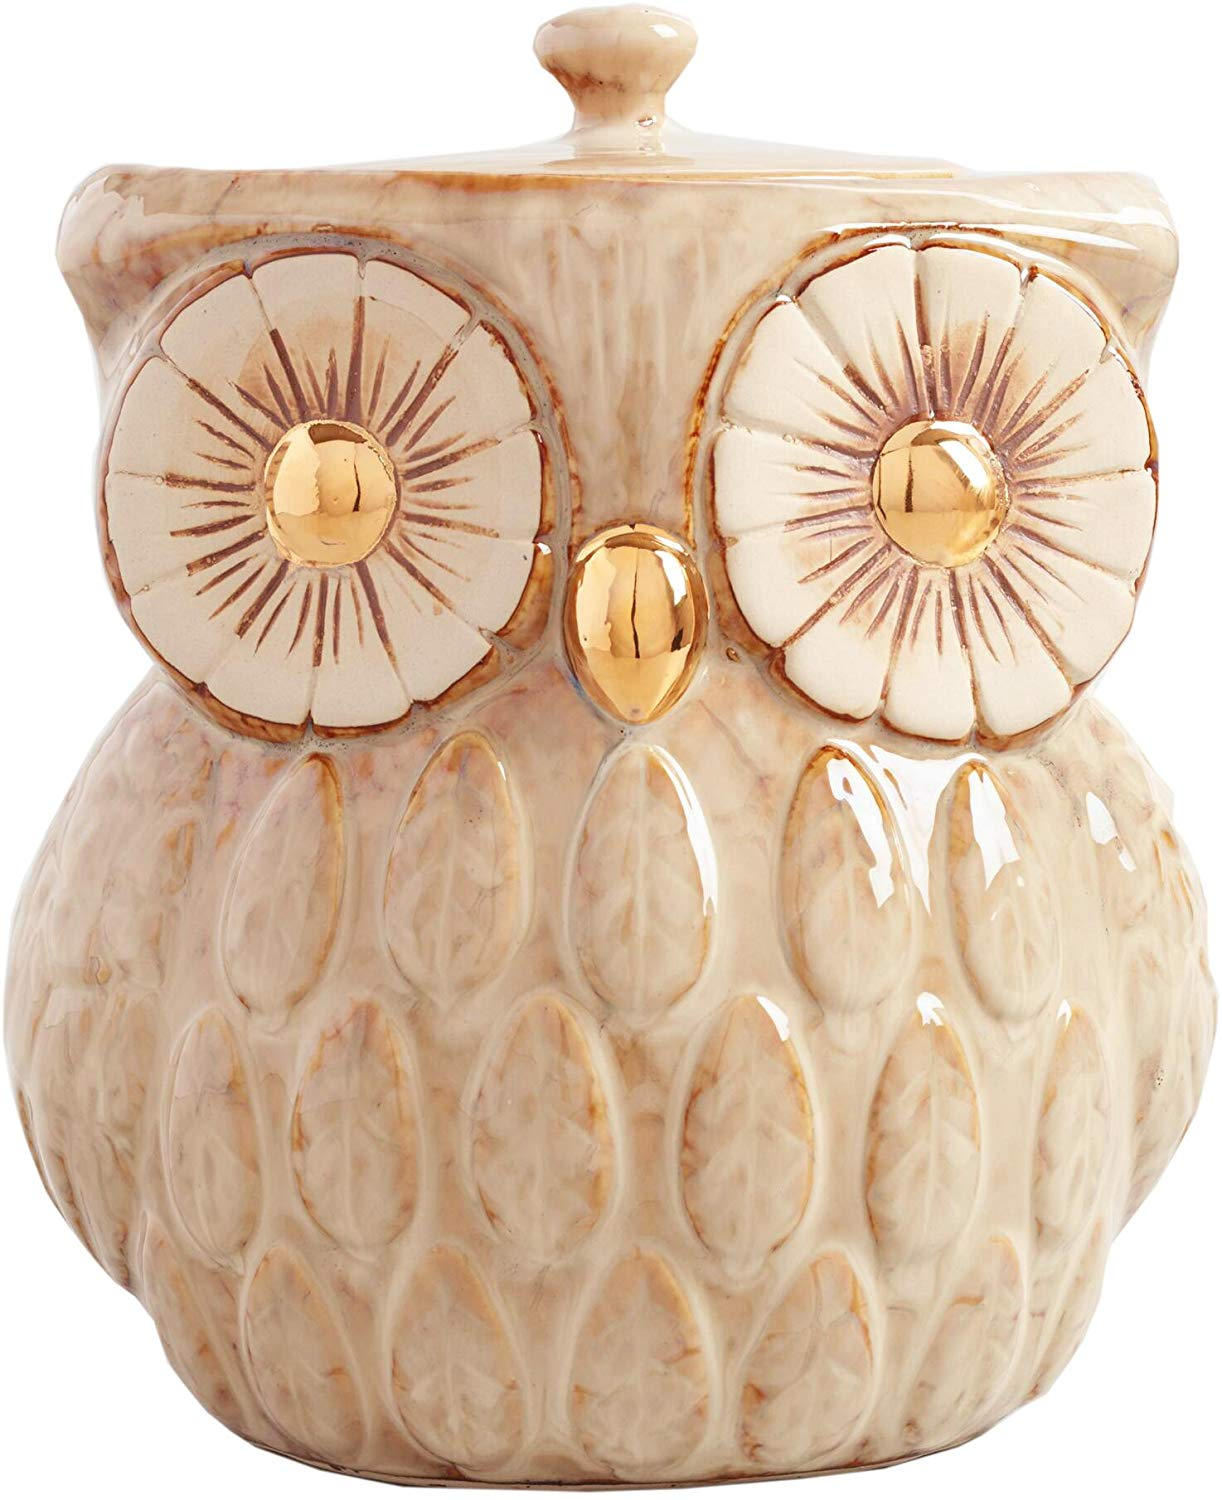 cookie jar shaped like an owl